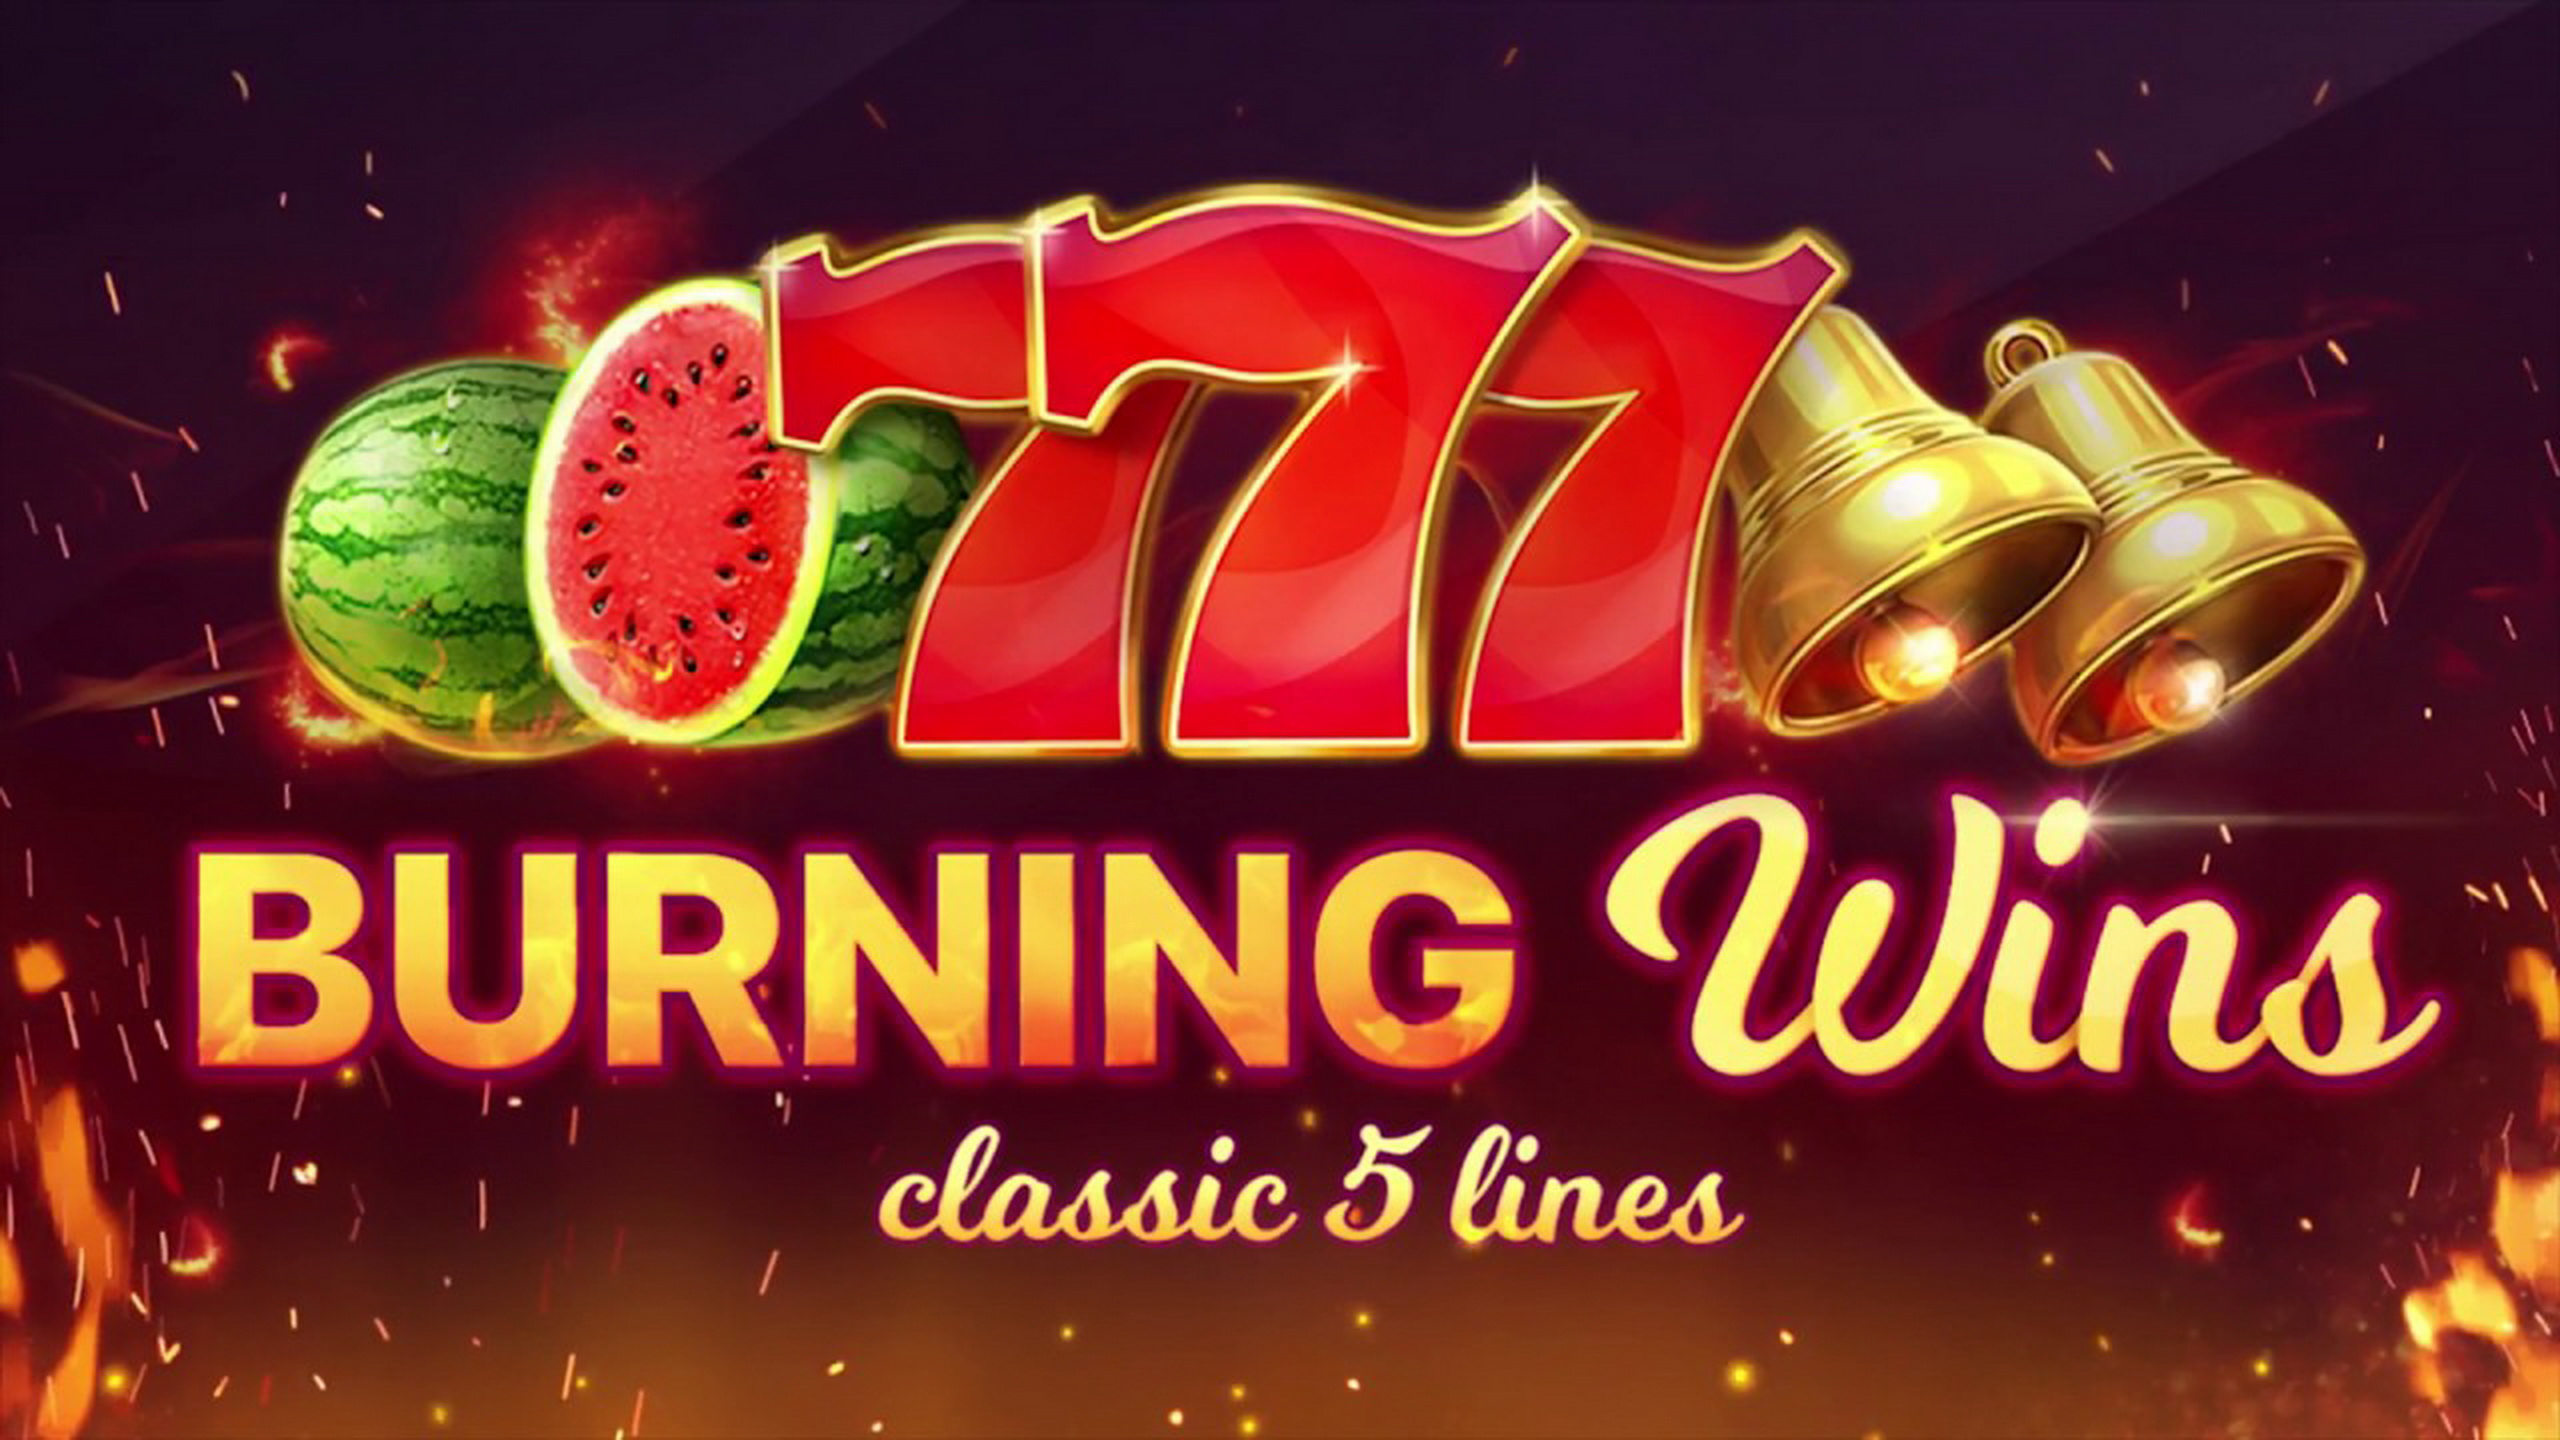 The Super Burning Wins: classic 5 lines Online Slot Demo Game by Playson